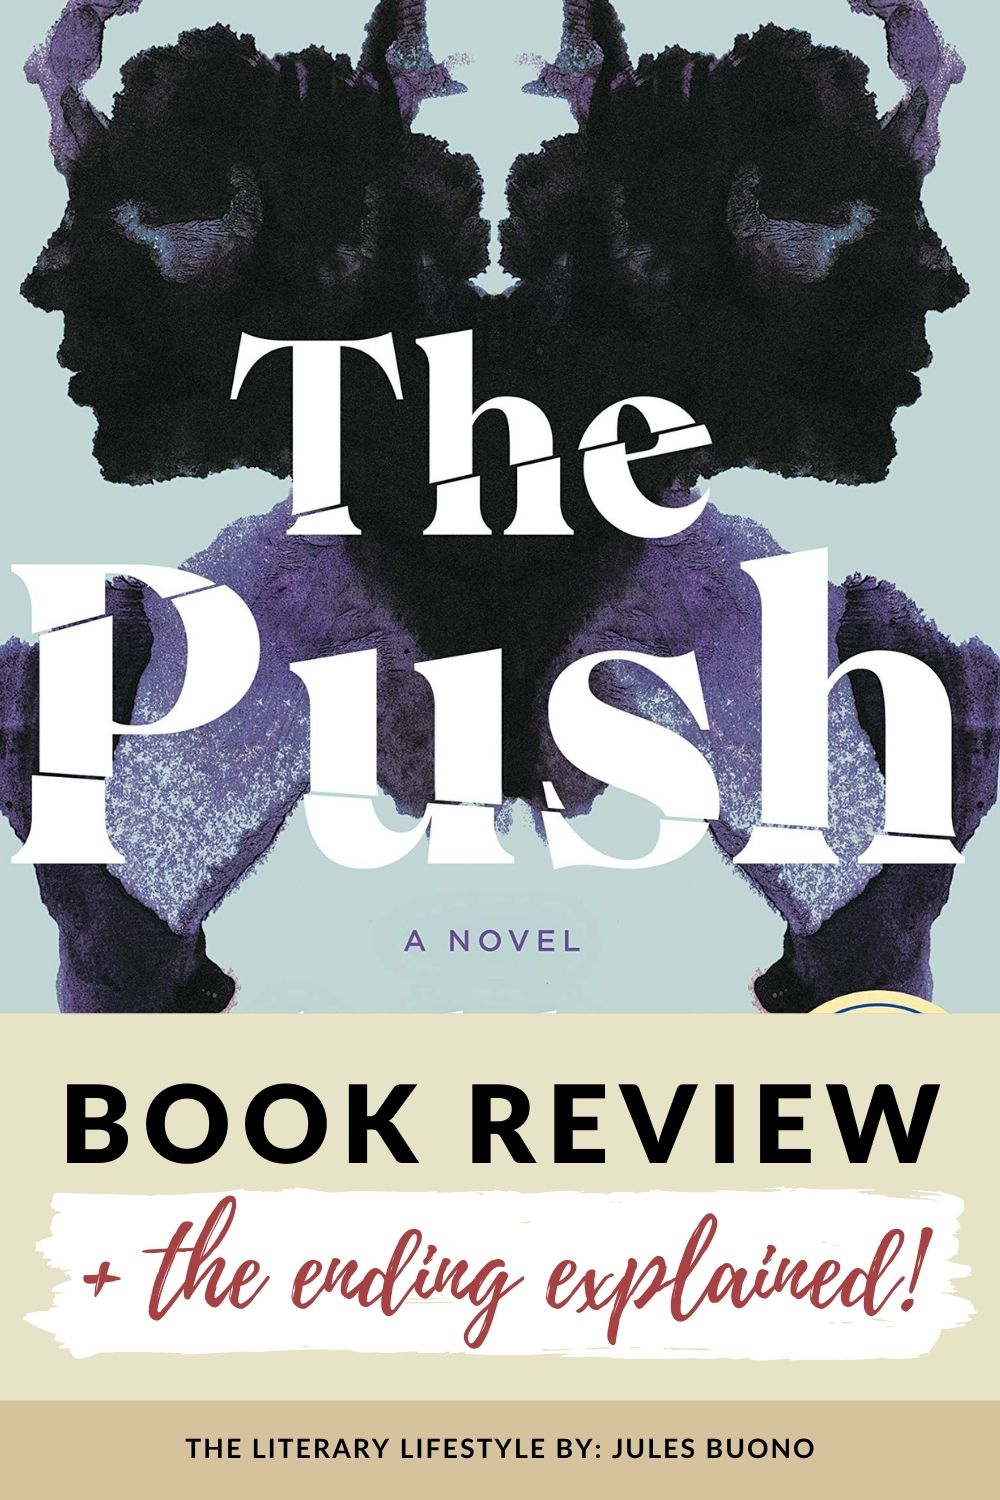 The Push Book Review (+ the ending explained)